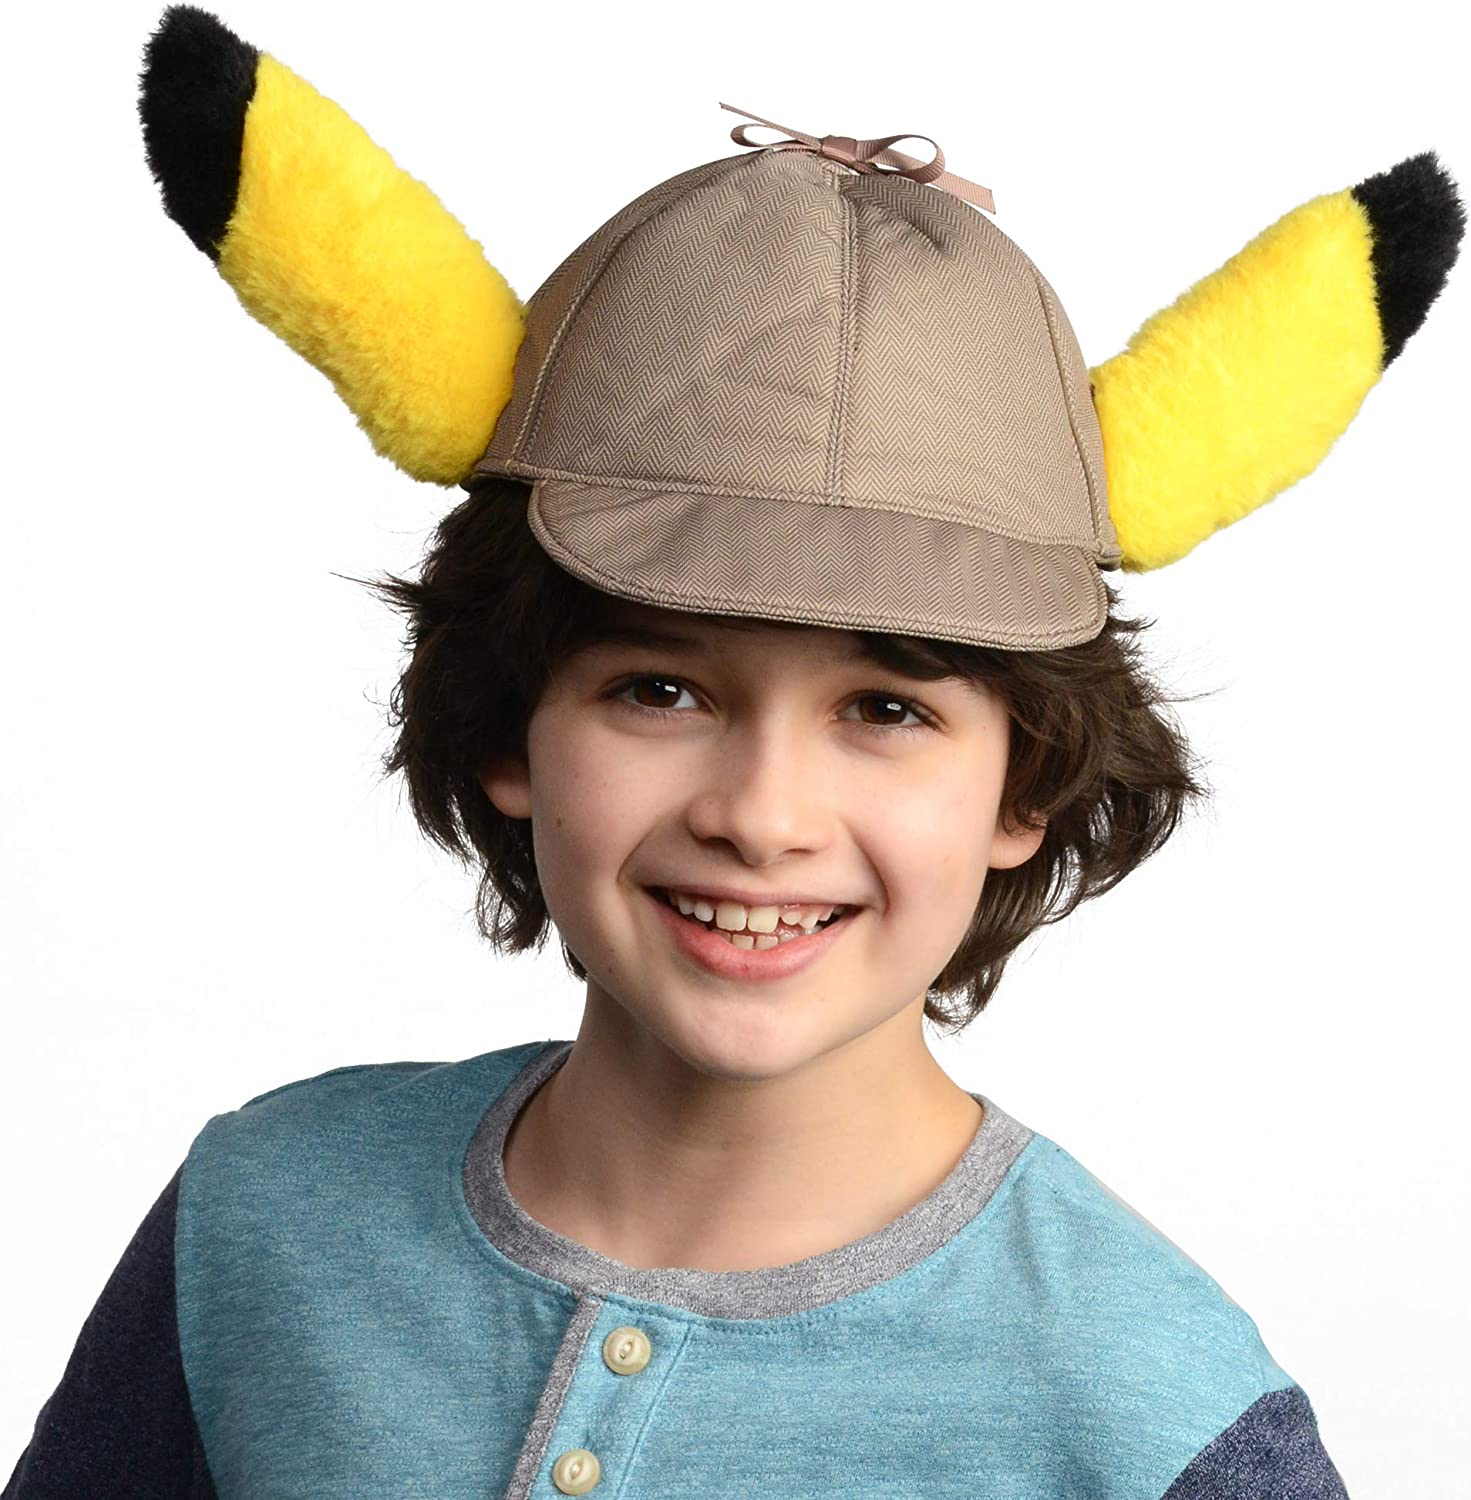 Amazon Com Pokemon Detective Pikachu Movie Hat With Ears Perfect For Costumes Dress Up And Halloween One Size Fits Most Age 4 Toys Games